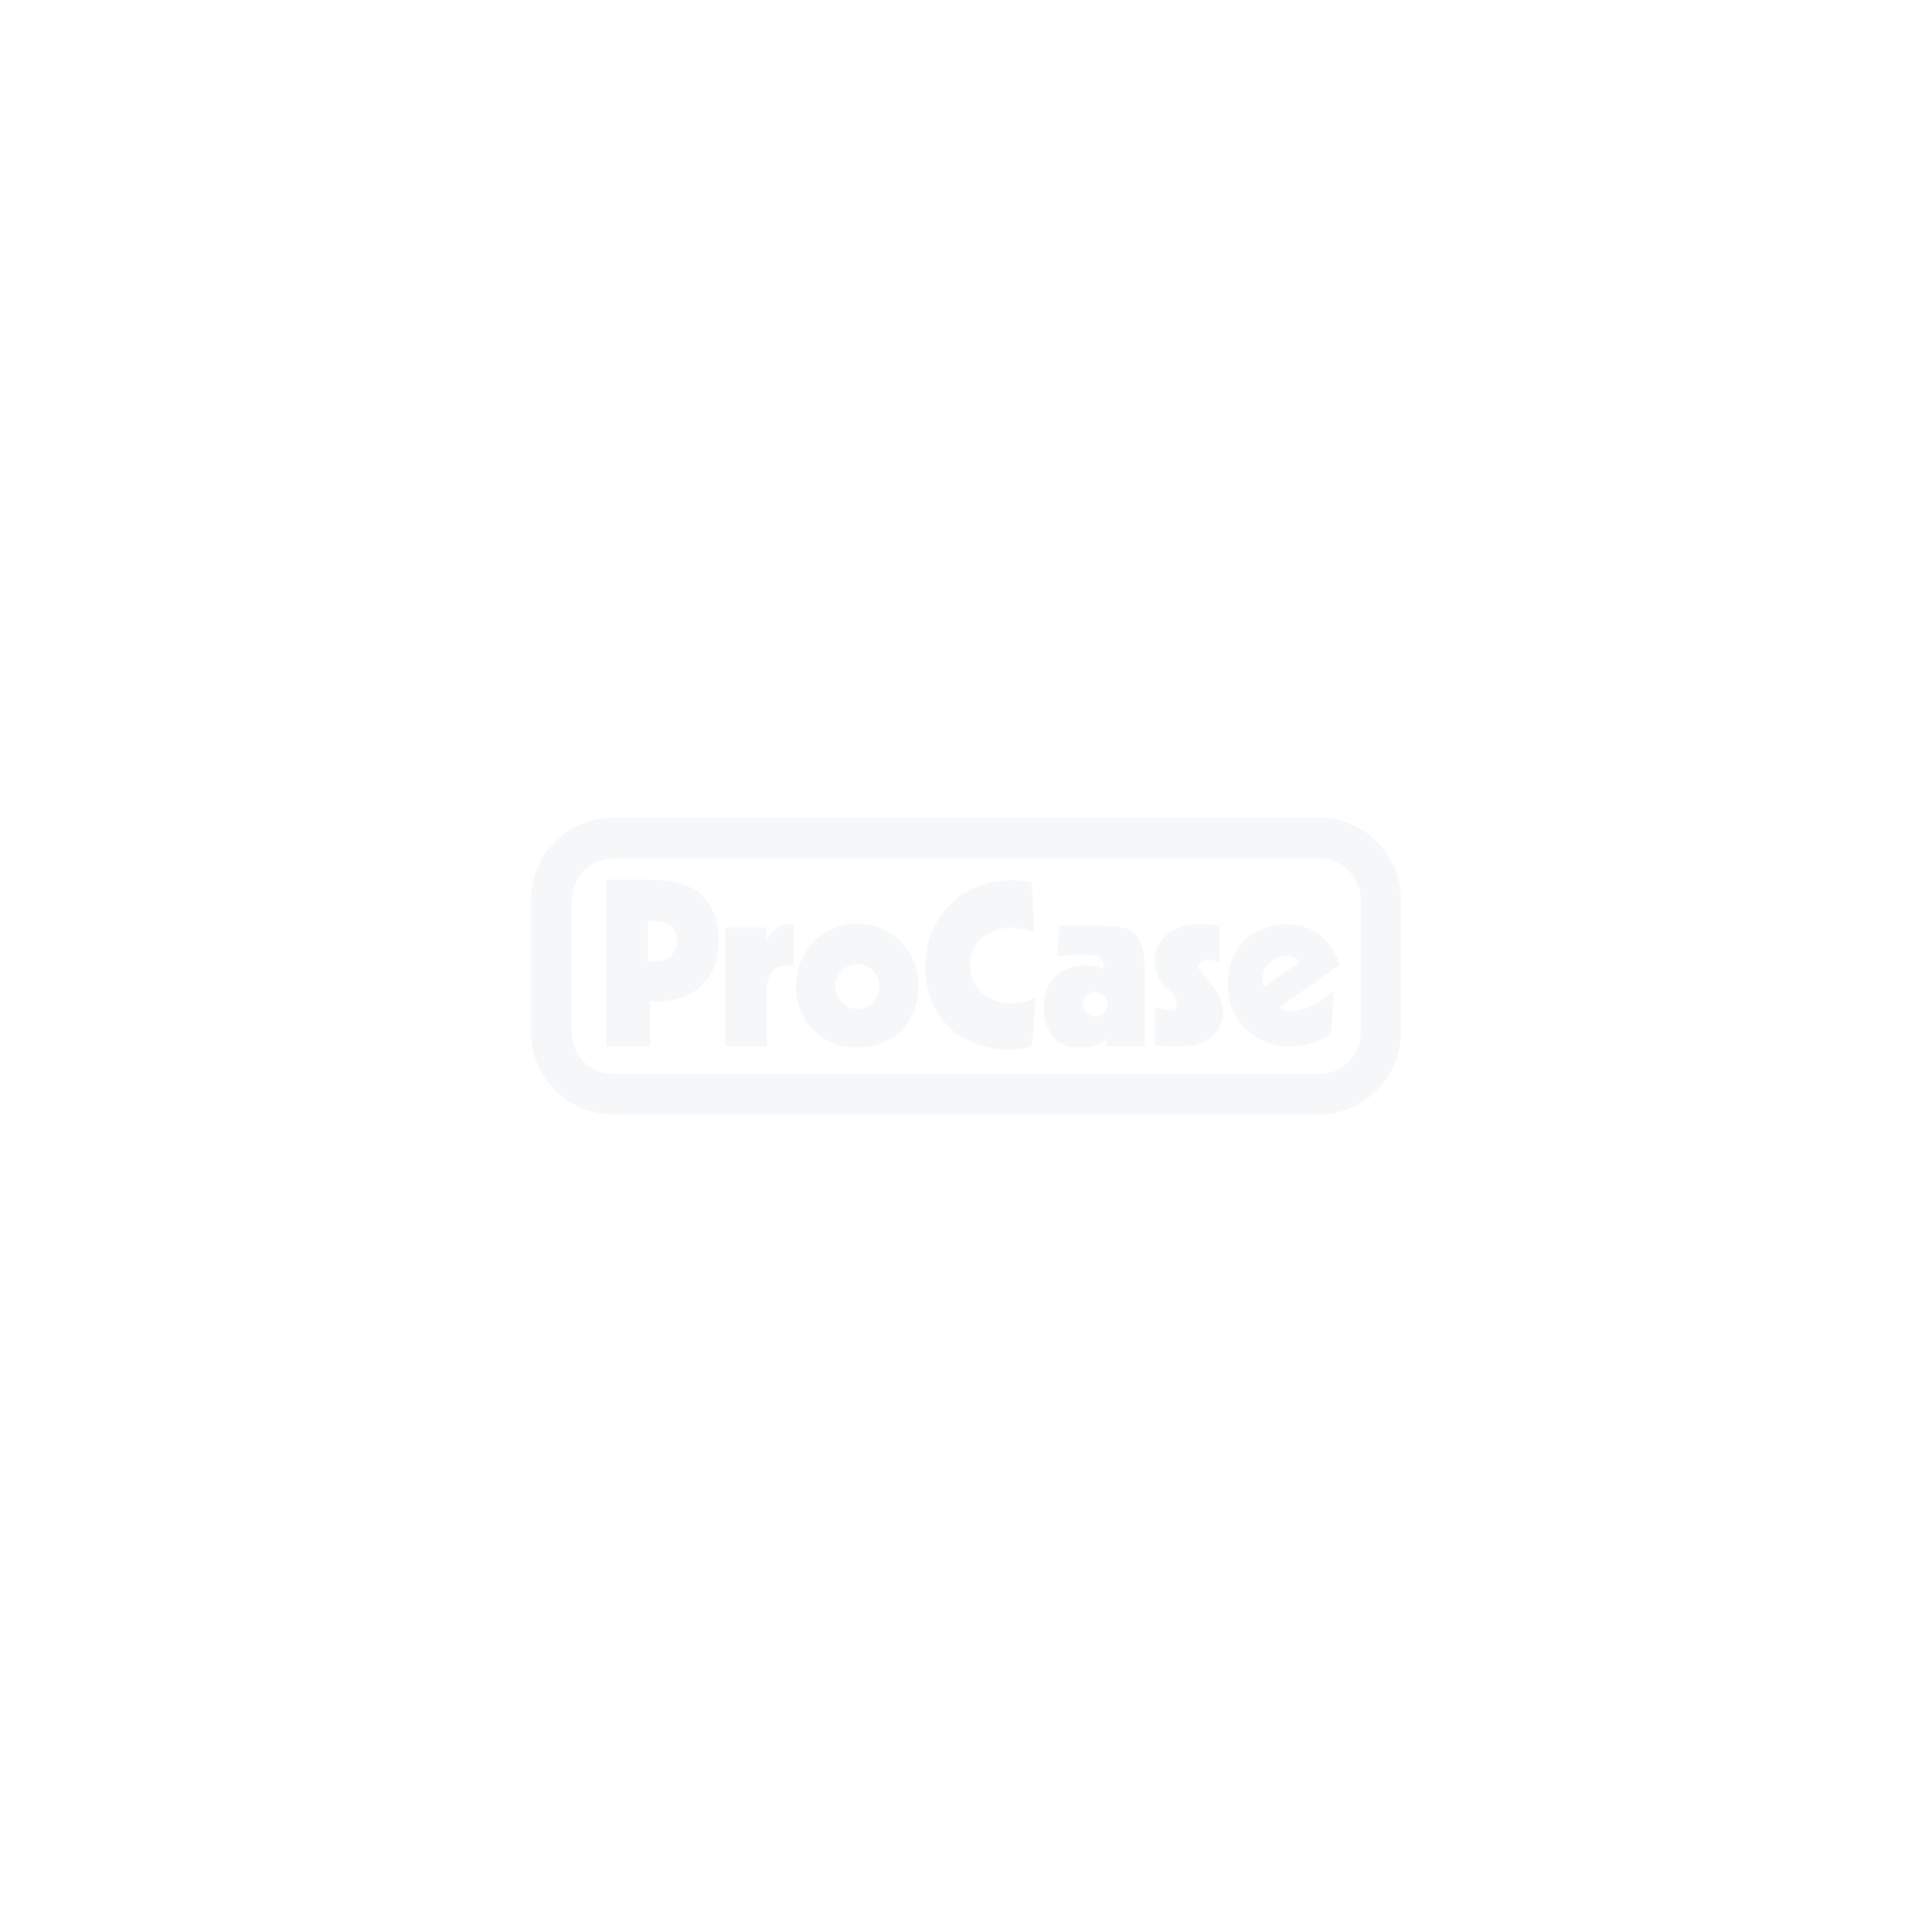 Flightcase für Beamer Optik variabel